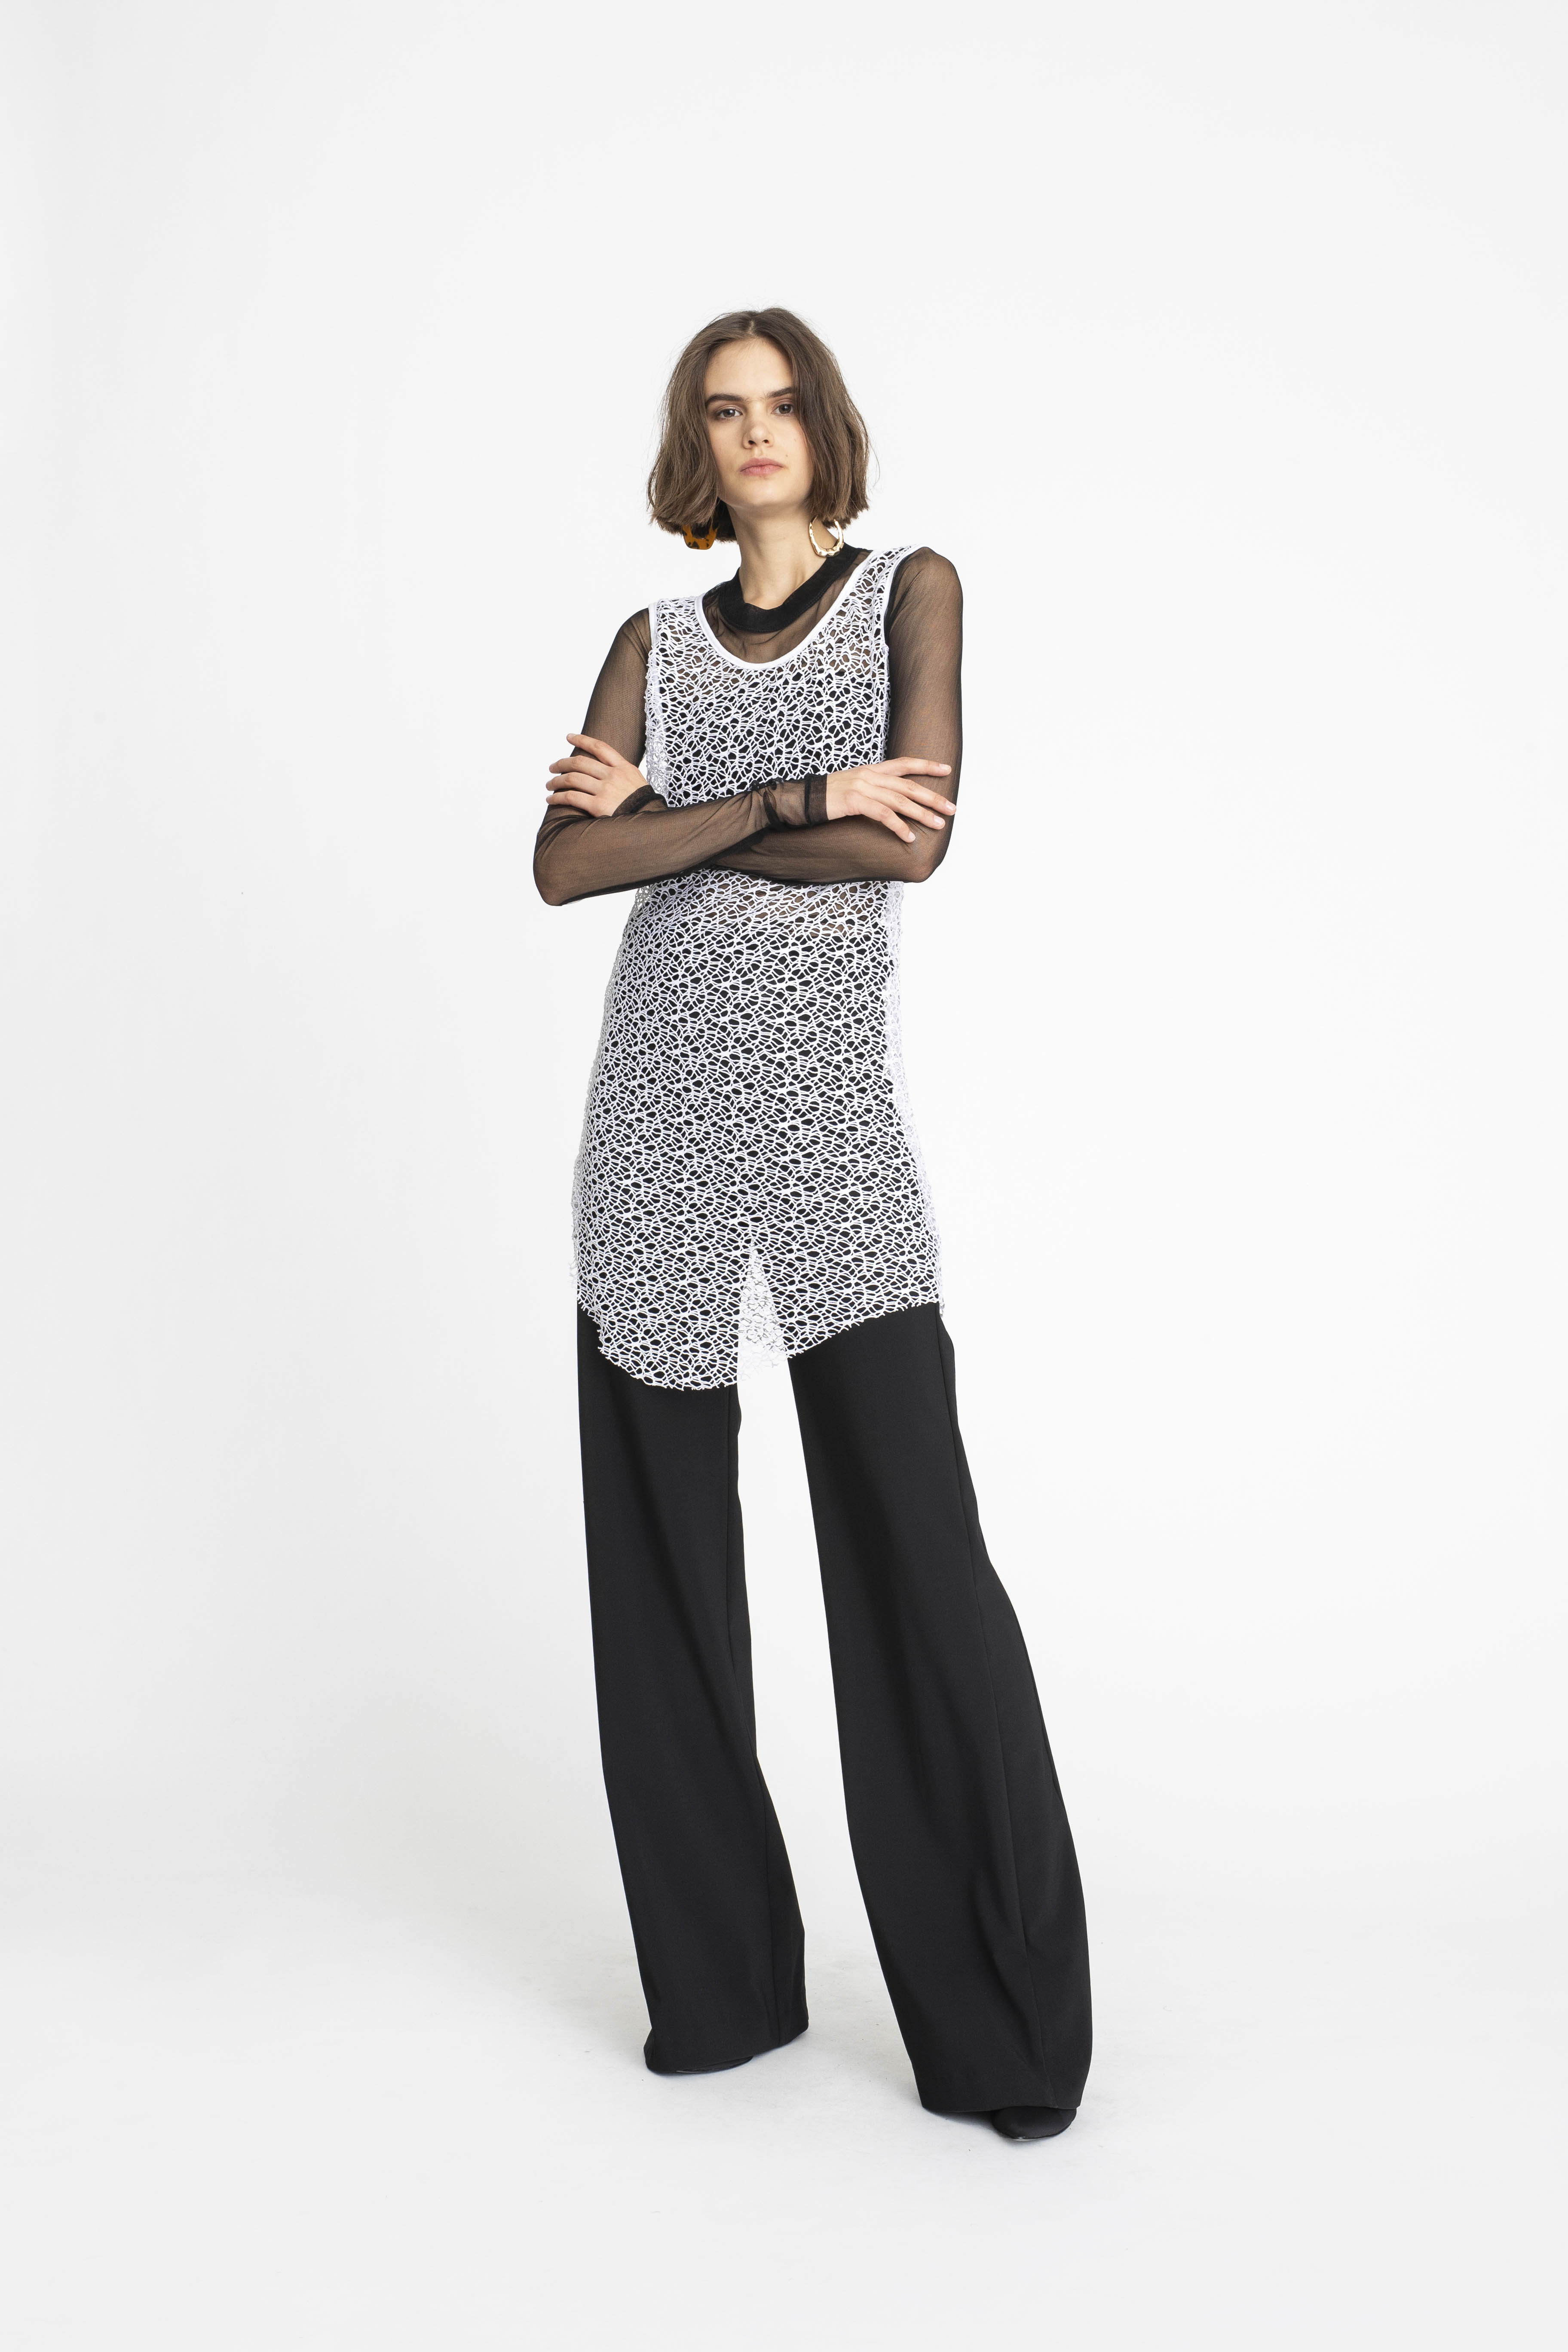 Undulate-Camber-Singlet_Long-Sleeve-Necessary-Tee-_Panelled-Joust-Pant_TaylorBoutique_AW19_L100_2251 2